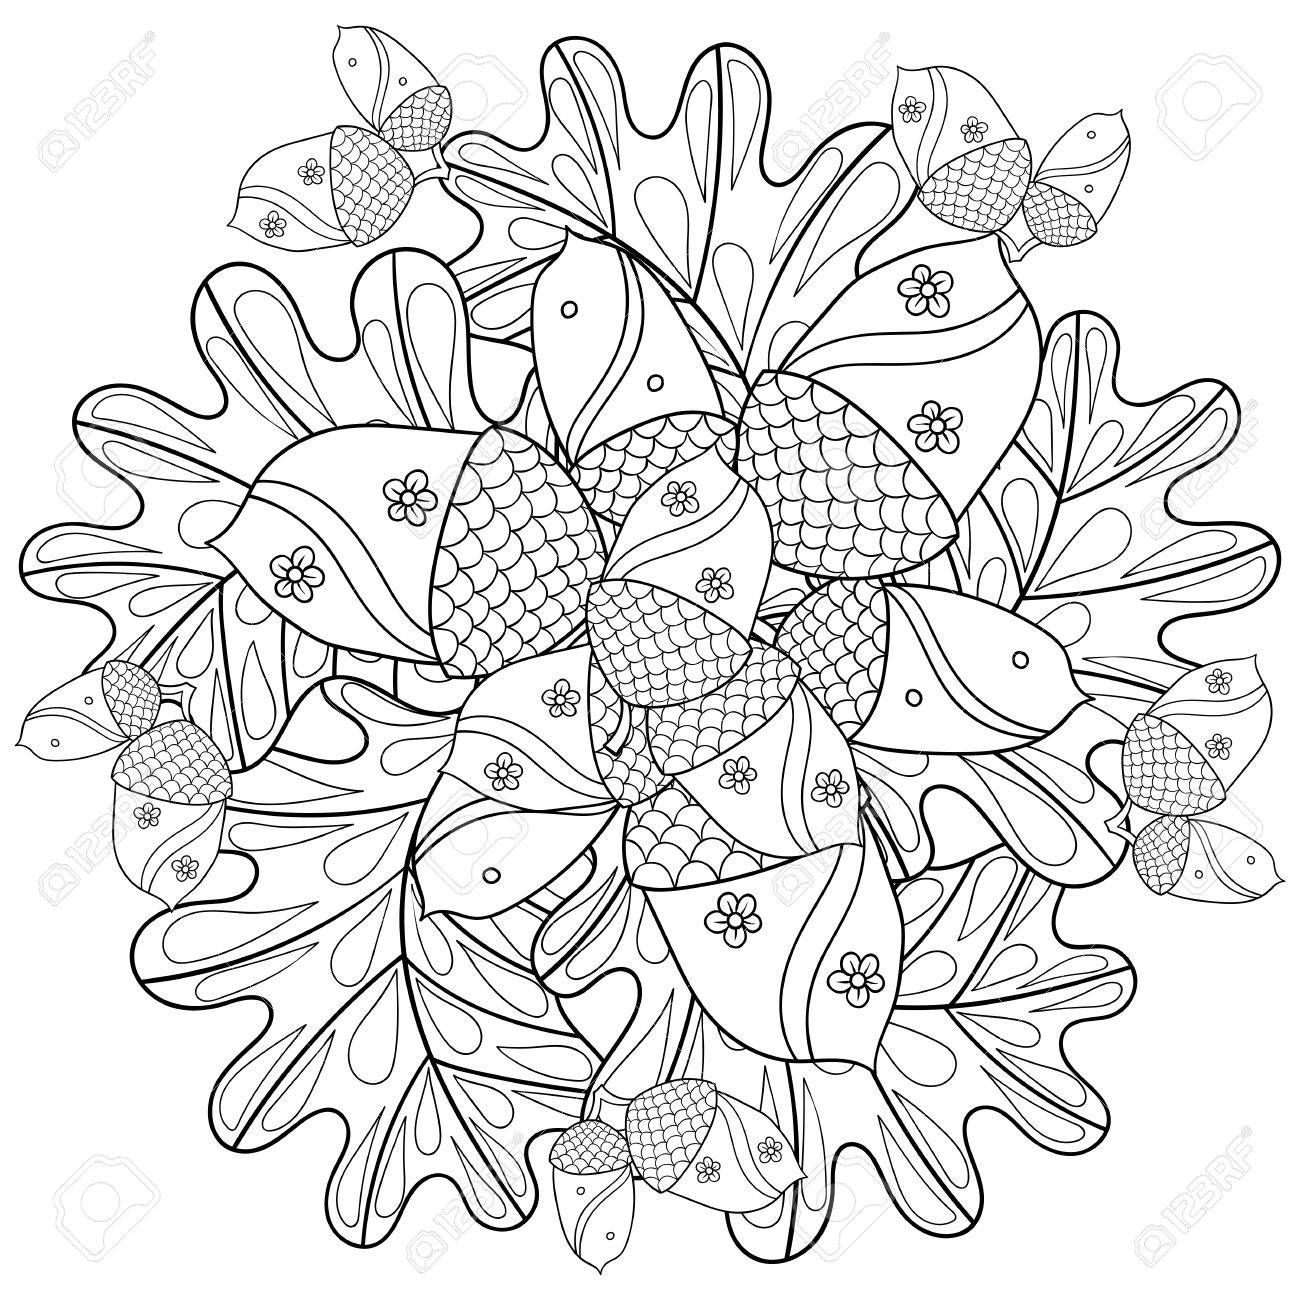 Vector Autumn Patterned Background With Oak Leaves And Trees For Adult Coloring Pages Hand Drawn